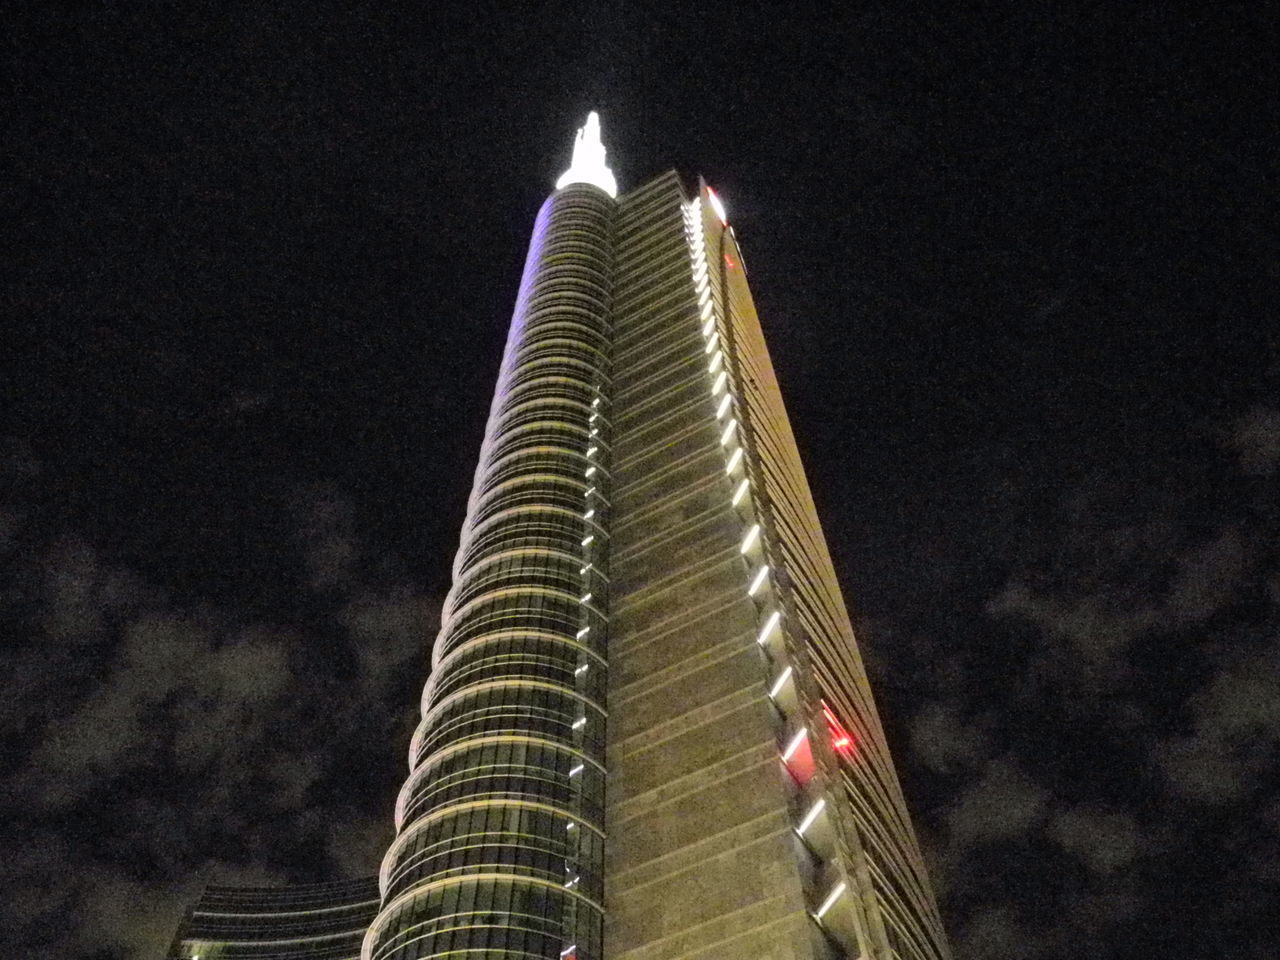 night, low angle view, architecture, built structure, sky, illuminated, building exterior, skyscraper, modern, no people, outdoors